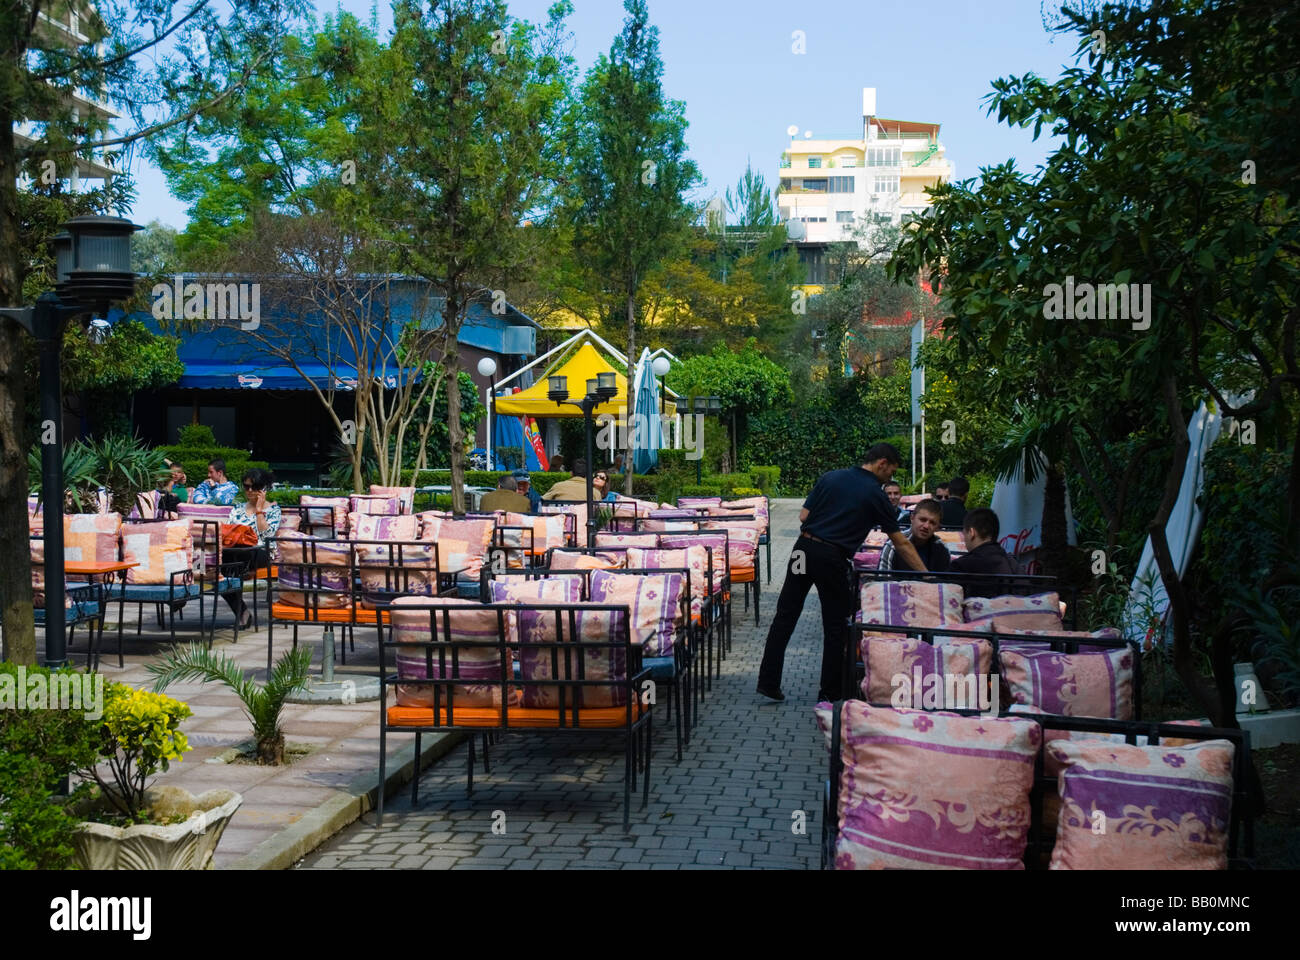 Cafe restaurant terrace in Blloku district of Tirana Albania Europe - Stock Image